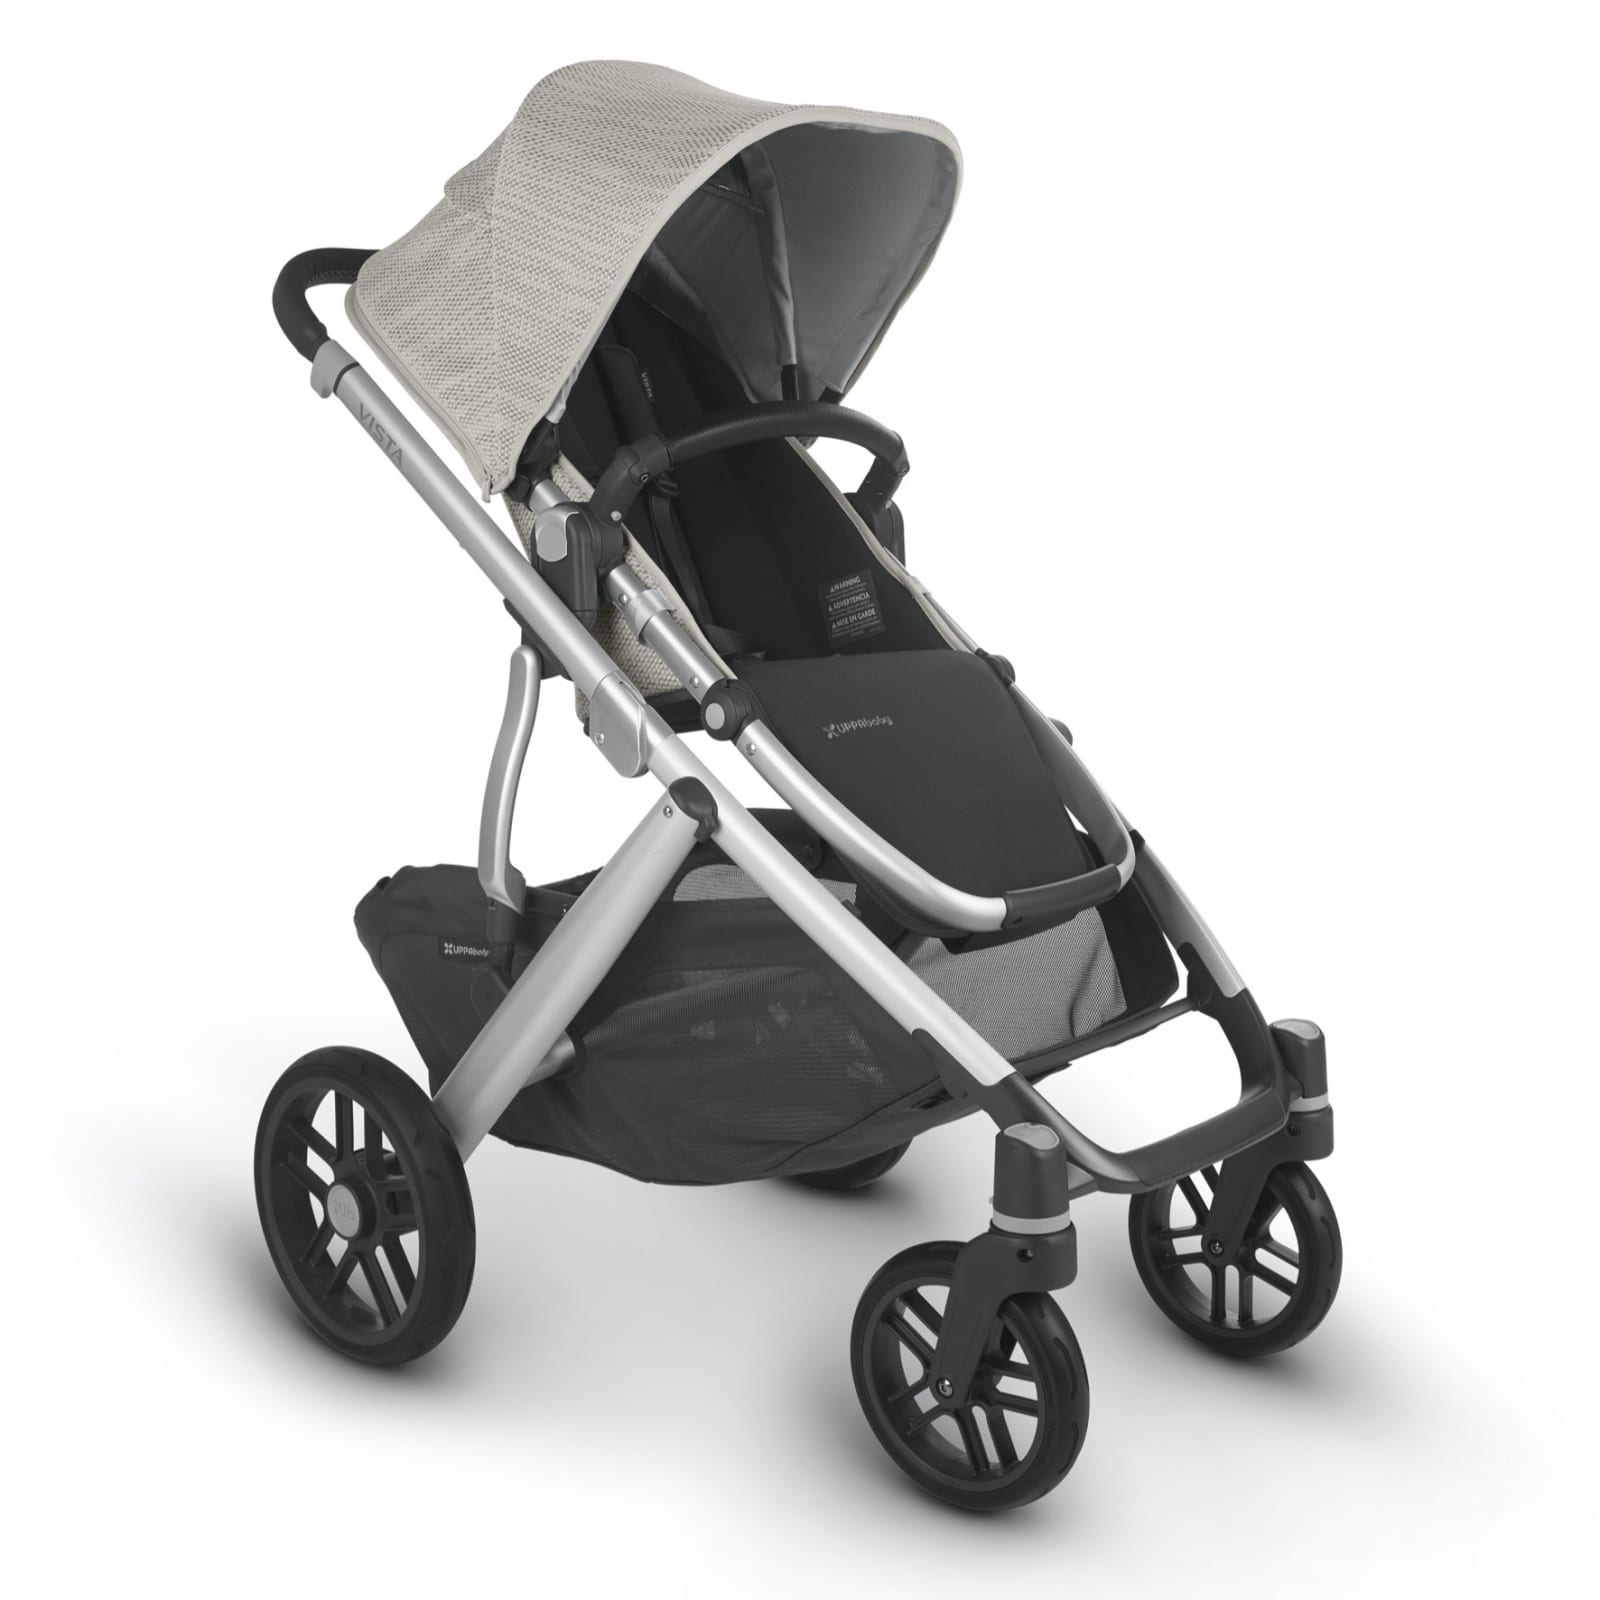 UPPABaby VISTA 2 Stroller & Carry Cot  – SIERRA product image